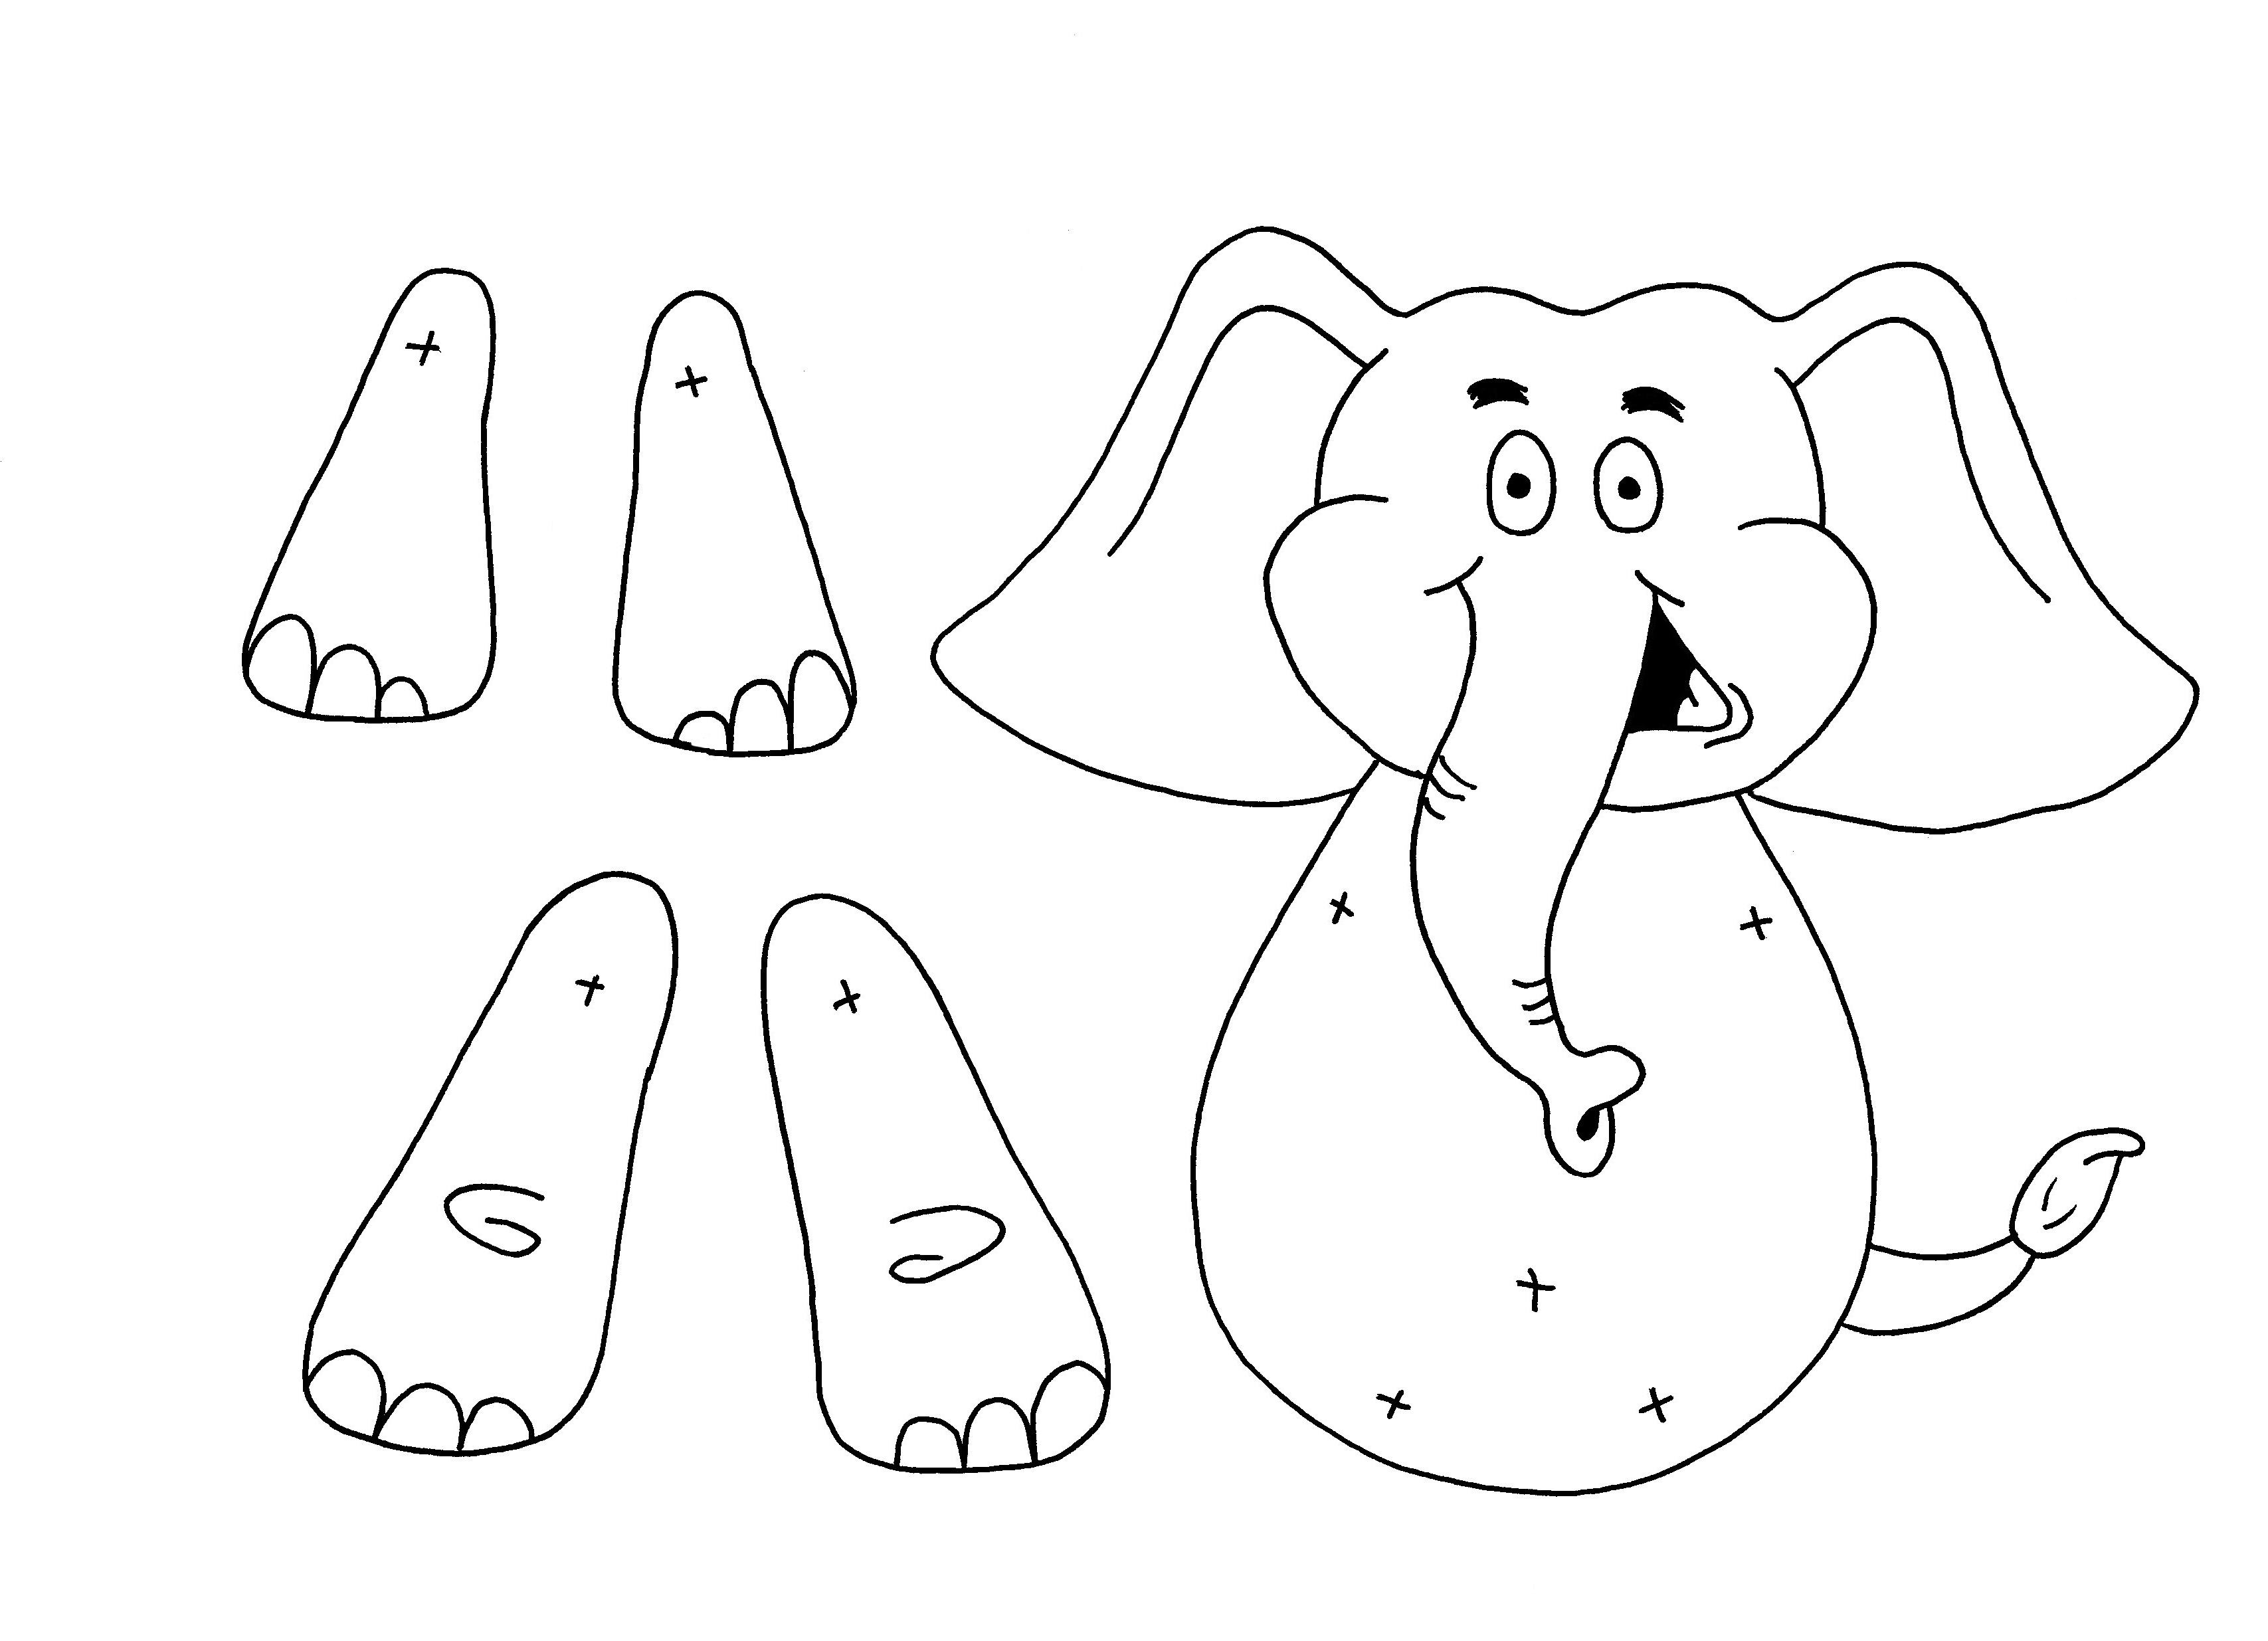 Download PDF Hippo colouring sheet